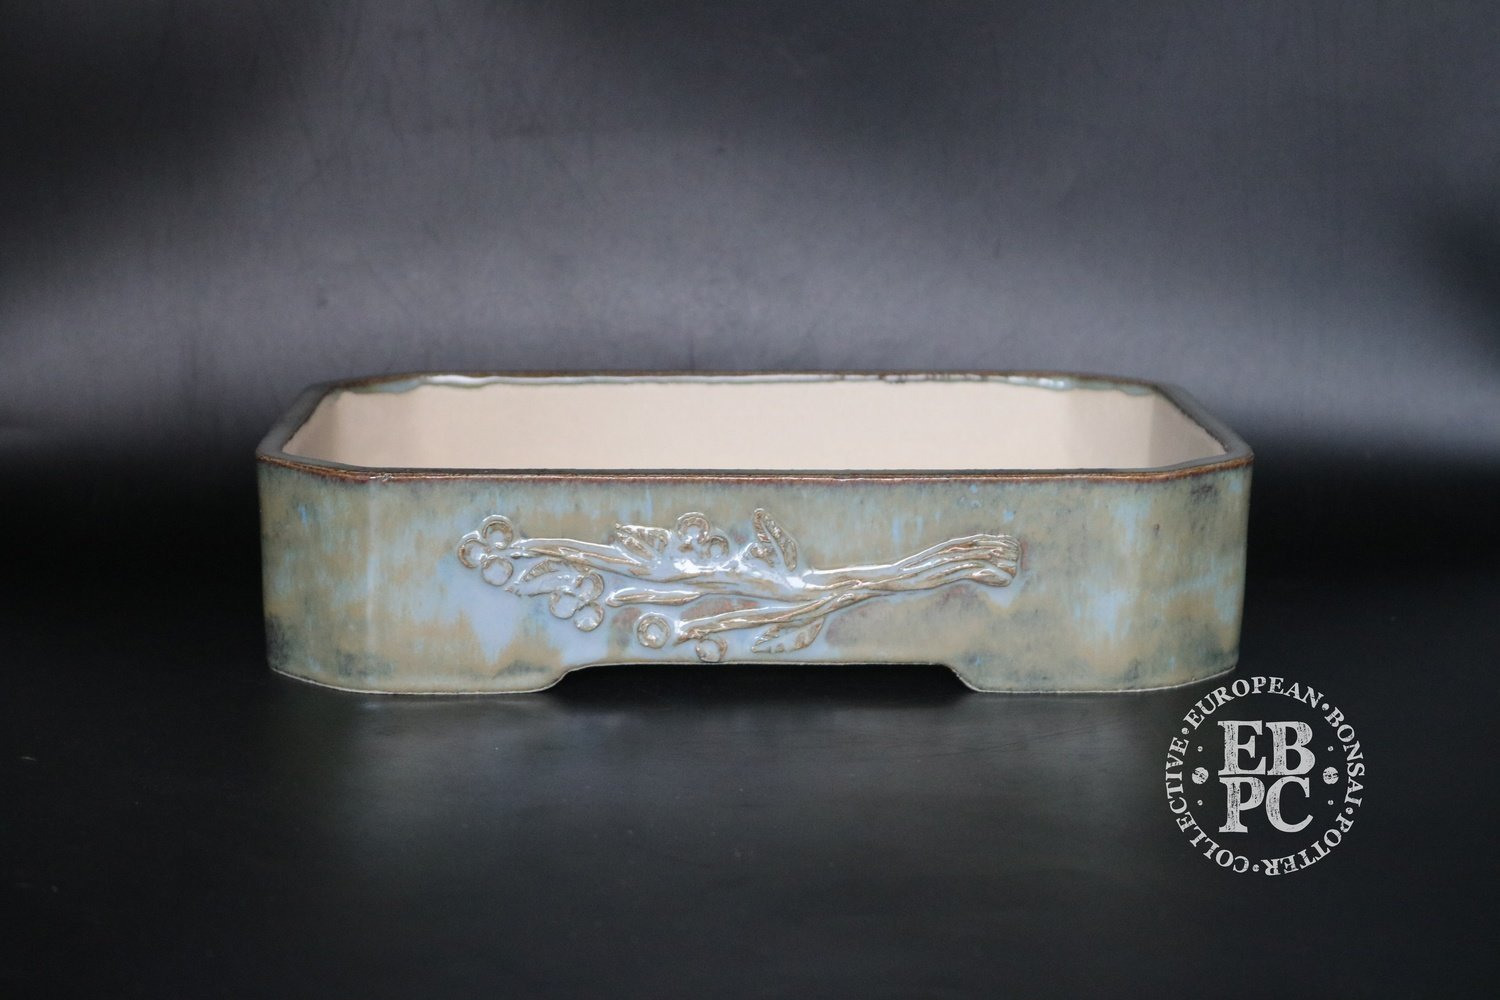 M.B. Bonsaischalen - 27.4cm; Carved branch motif; Stunning glaze; Rectangle; Blue; ;Green, Whites; Marc Berenbrinker